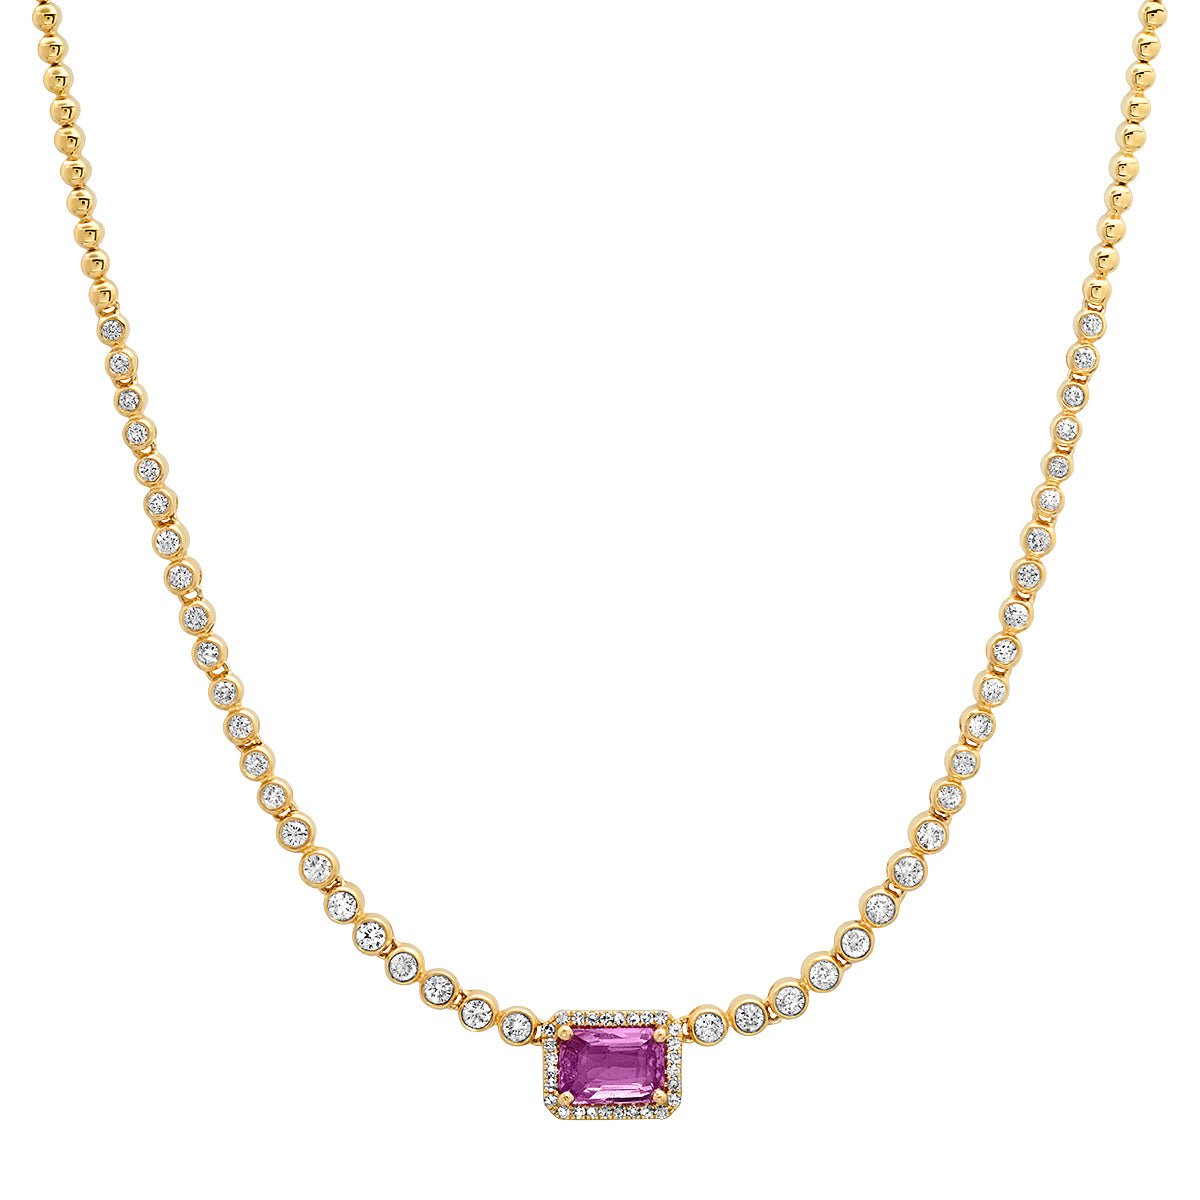 Pink Sapphire and Bezel Set Diamond Principessa Necklace